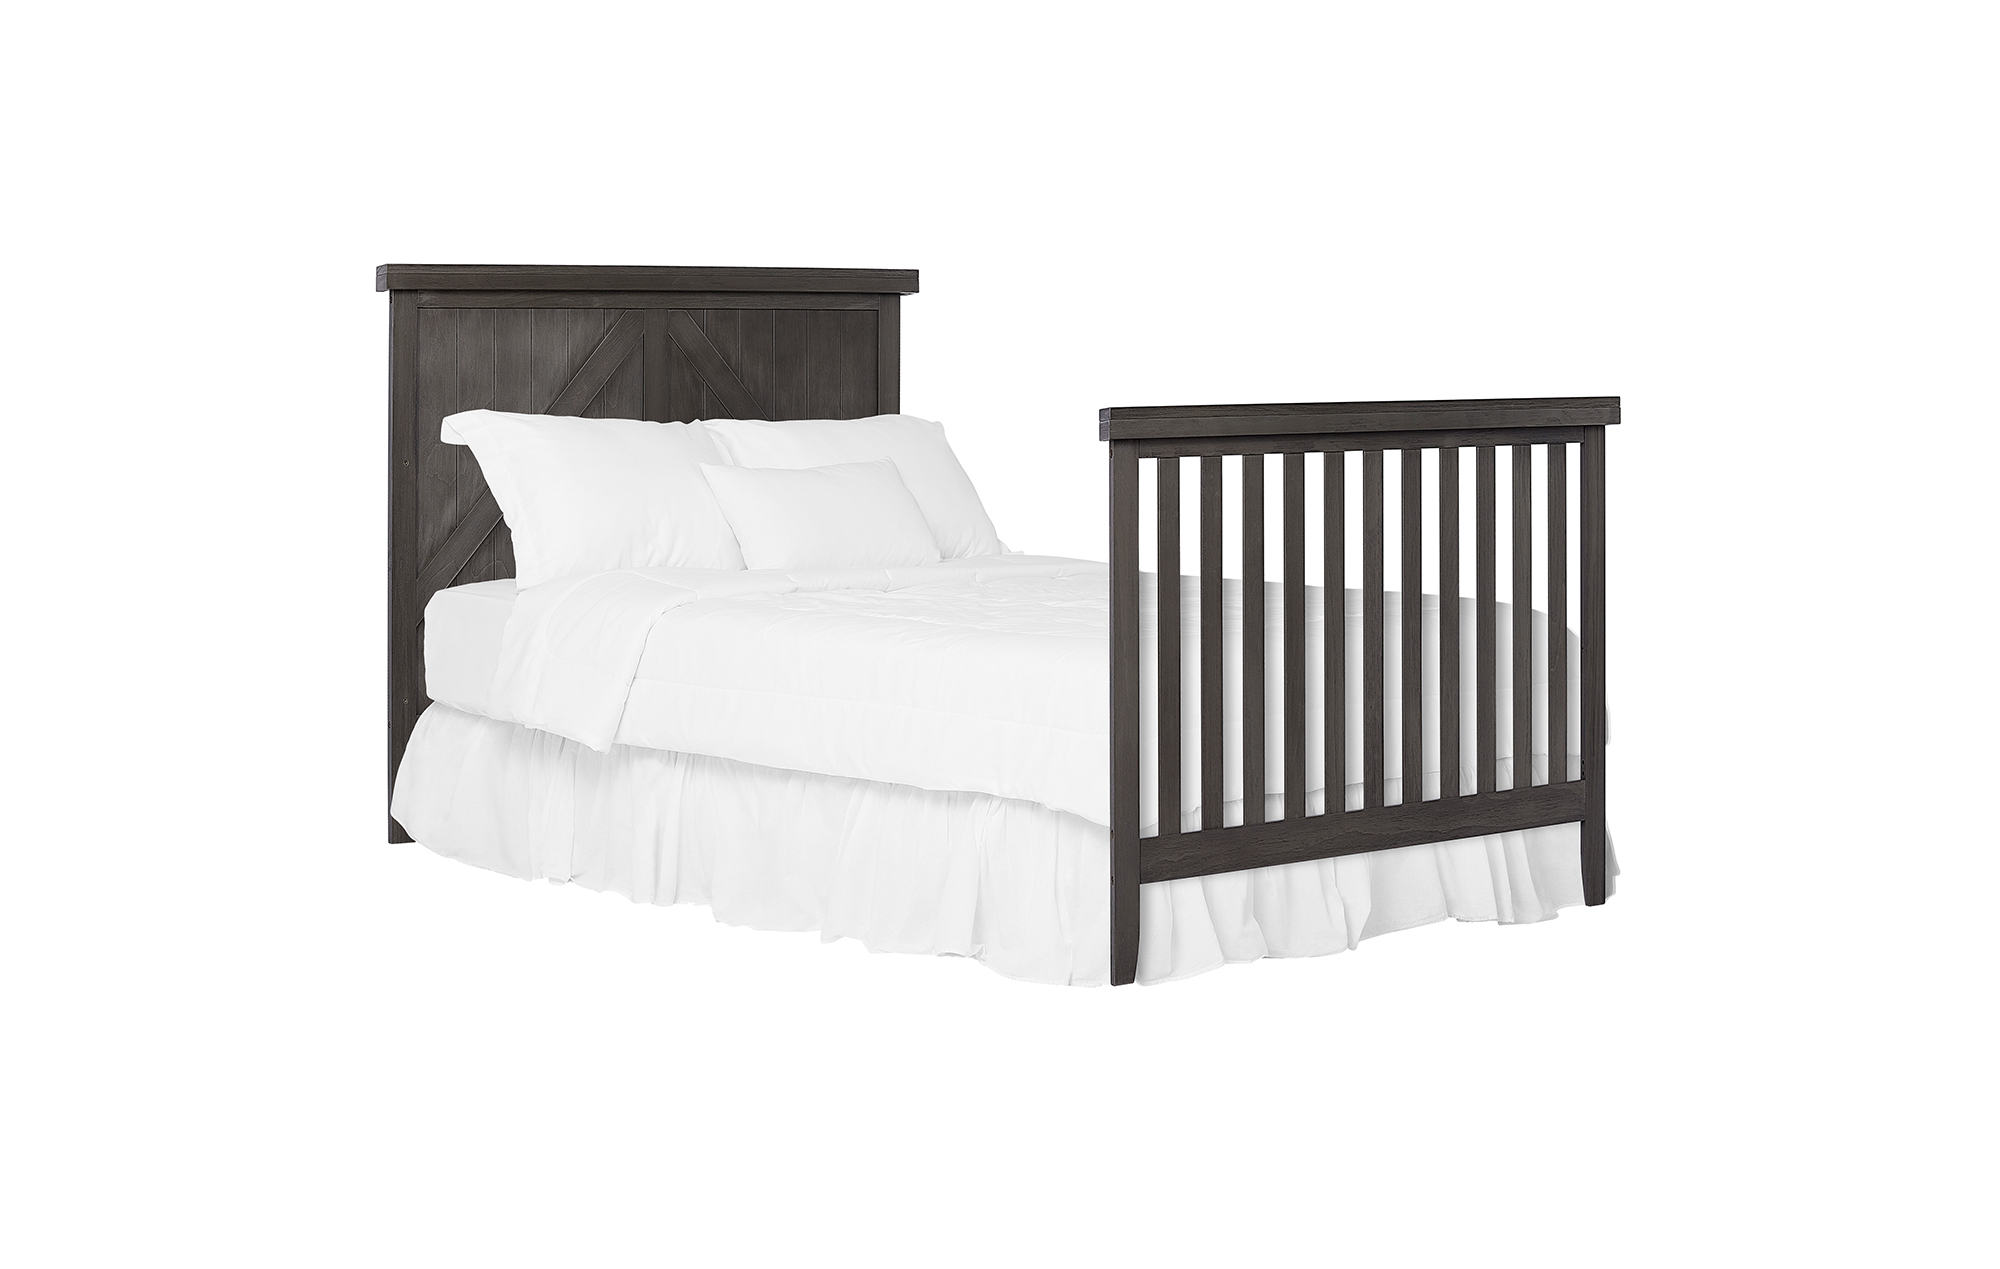 771BR-WGREY Olive Full-Size Bed with Footboard